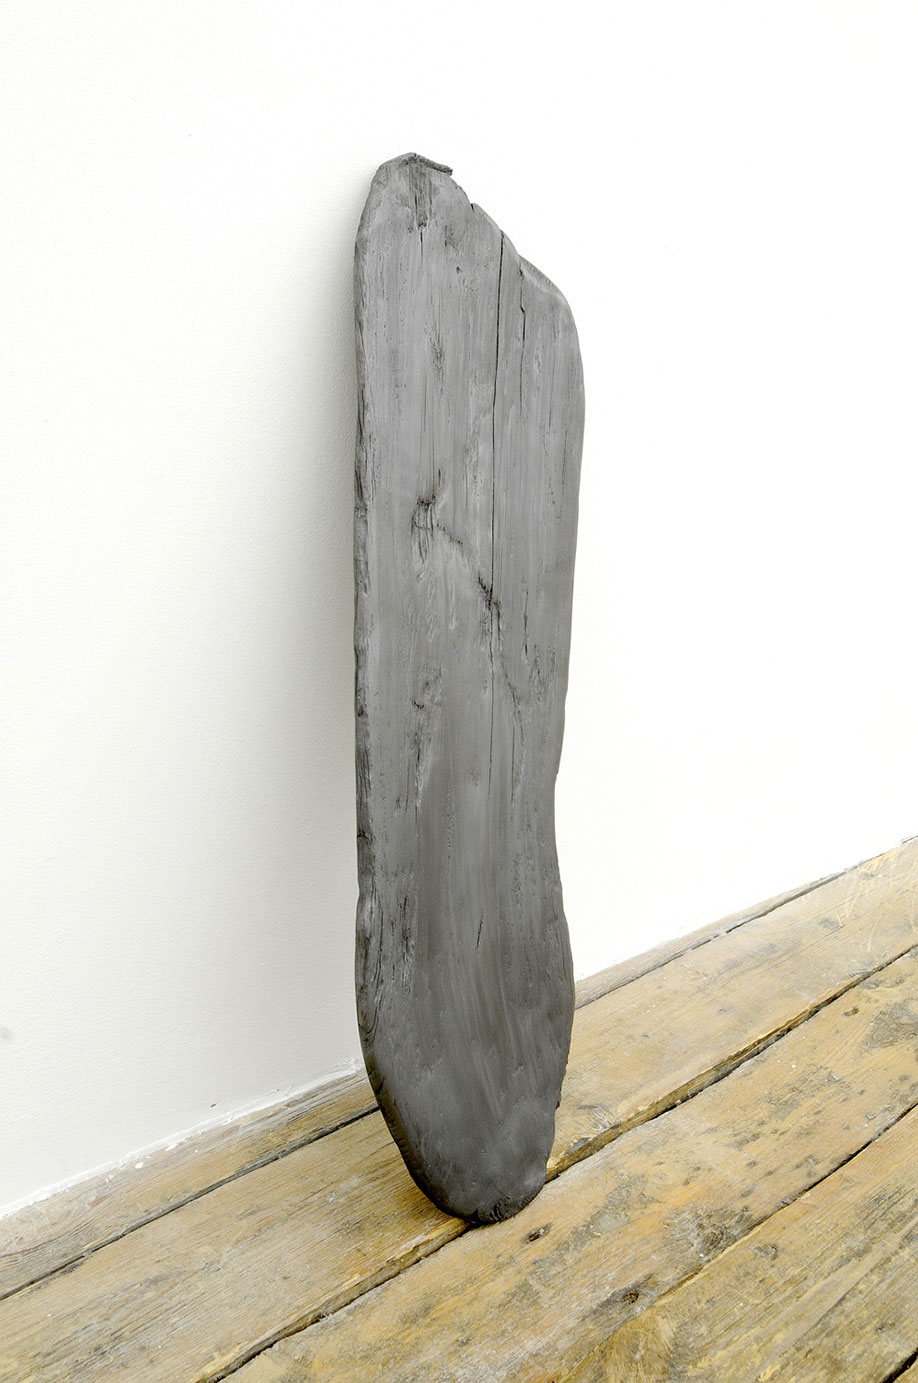 <b>Title: </b>Driftwood<br /><b>Year: </b>2007<br /><b>Medium: </b>Carved graphite<br />